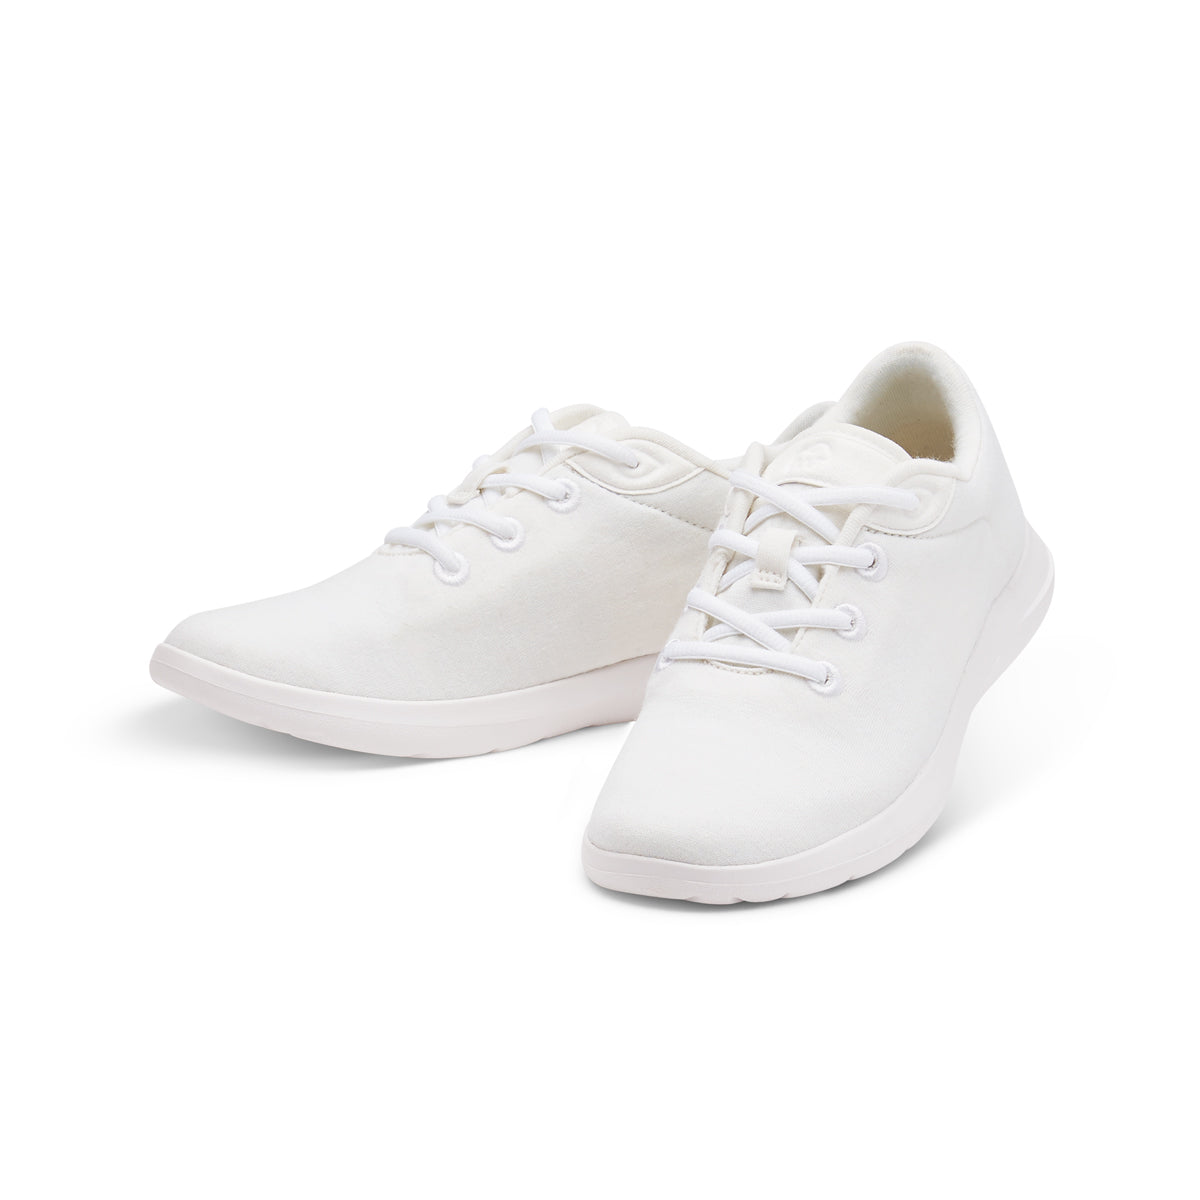 Women's Lace-Ups White